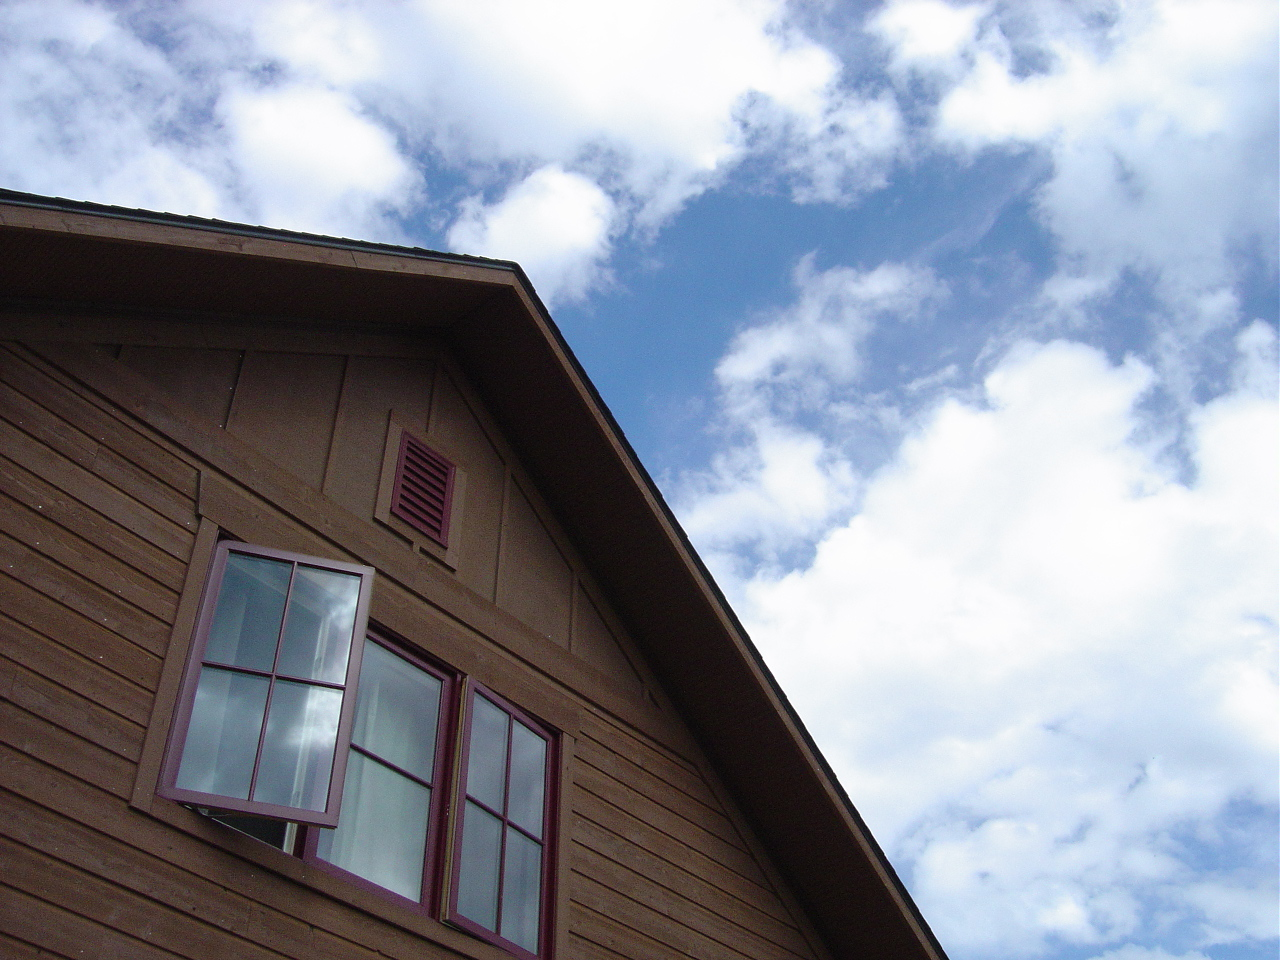 House with blue sky and clouds in background